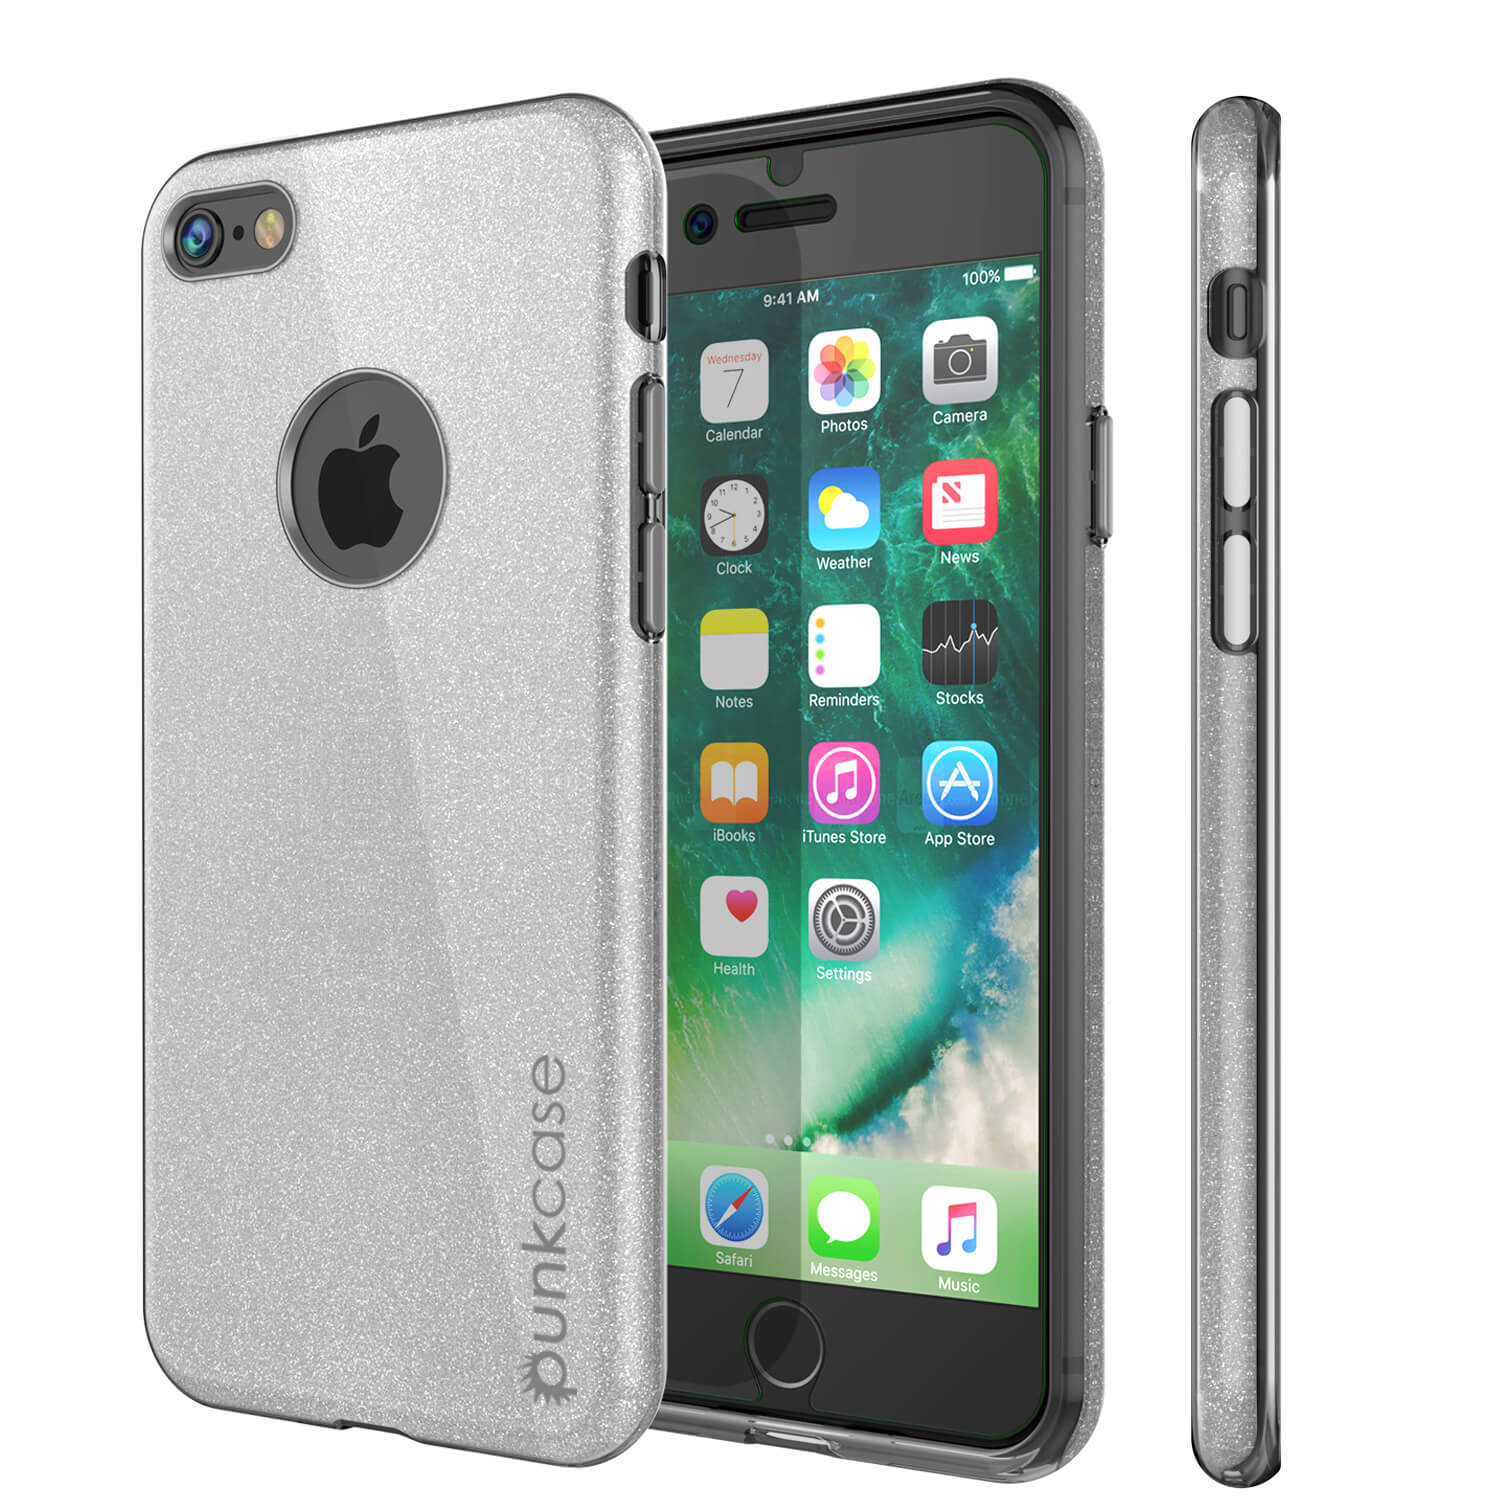 iPhone 6s/6 Case PunkCase Galactic SIlver Series Slim w/ Tempered Glass | Lifetime Warranty